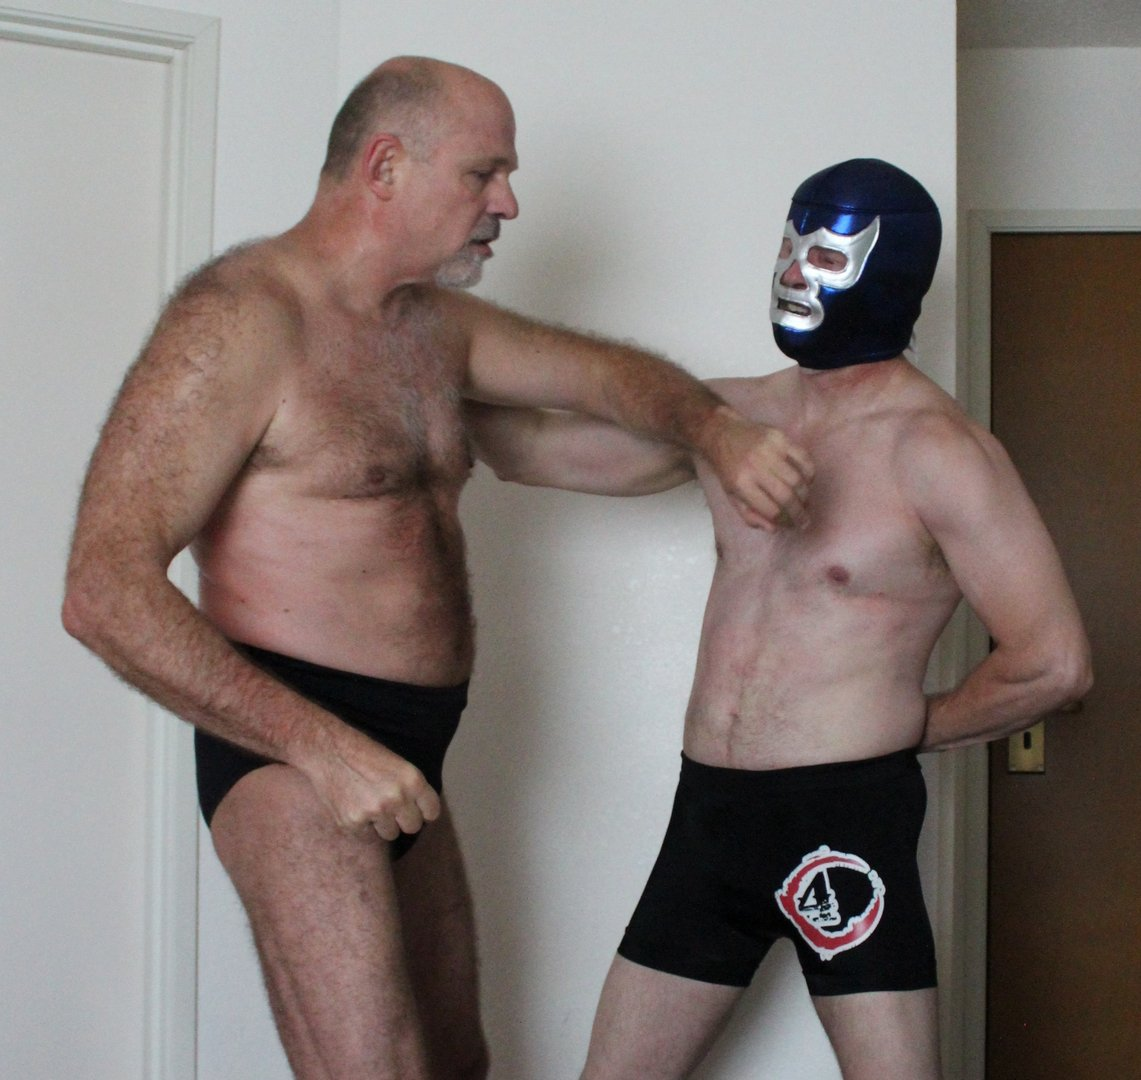 My pec punch buddy from  http:// GlobalFight.com  &nbsp;   #tennessee #pec #punching #gut #pounding #bearcub #silverdaddy #mens #hairy #legs #chest #tn<br>http://pic.twitter.com/A9i45FP6qd